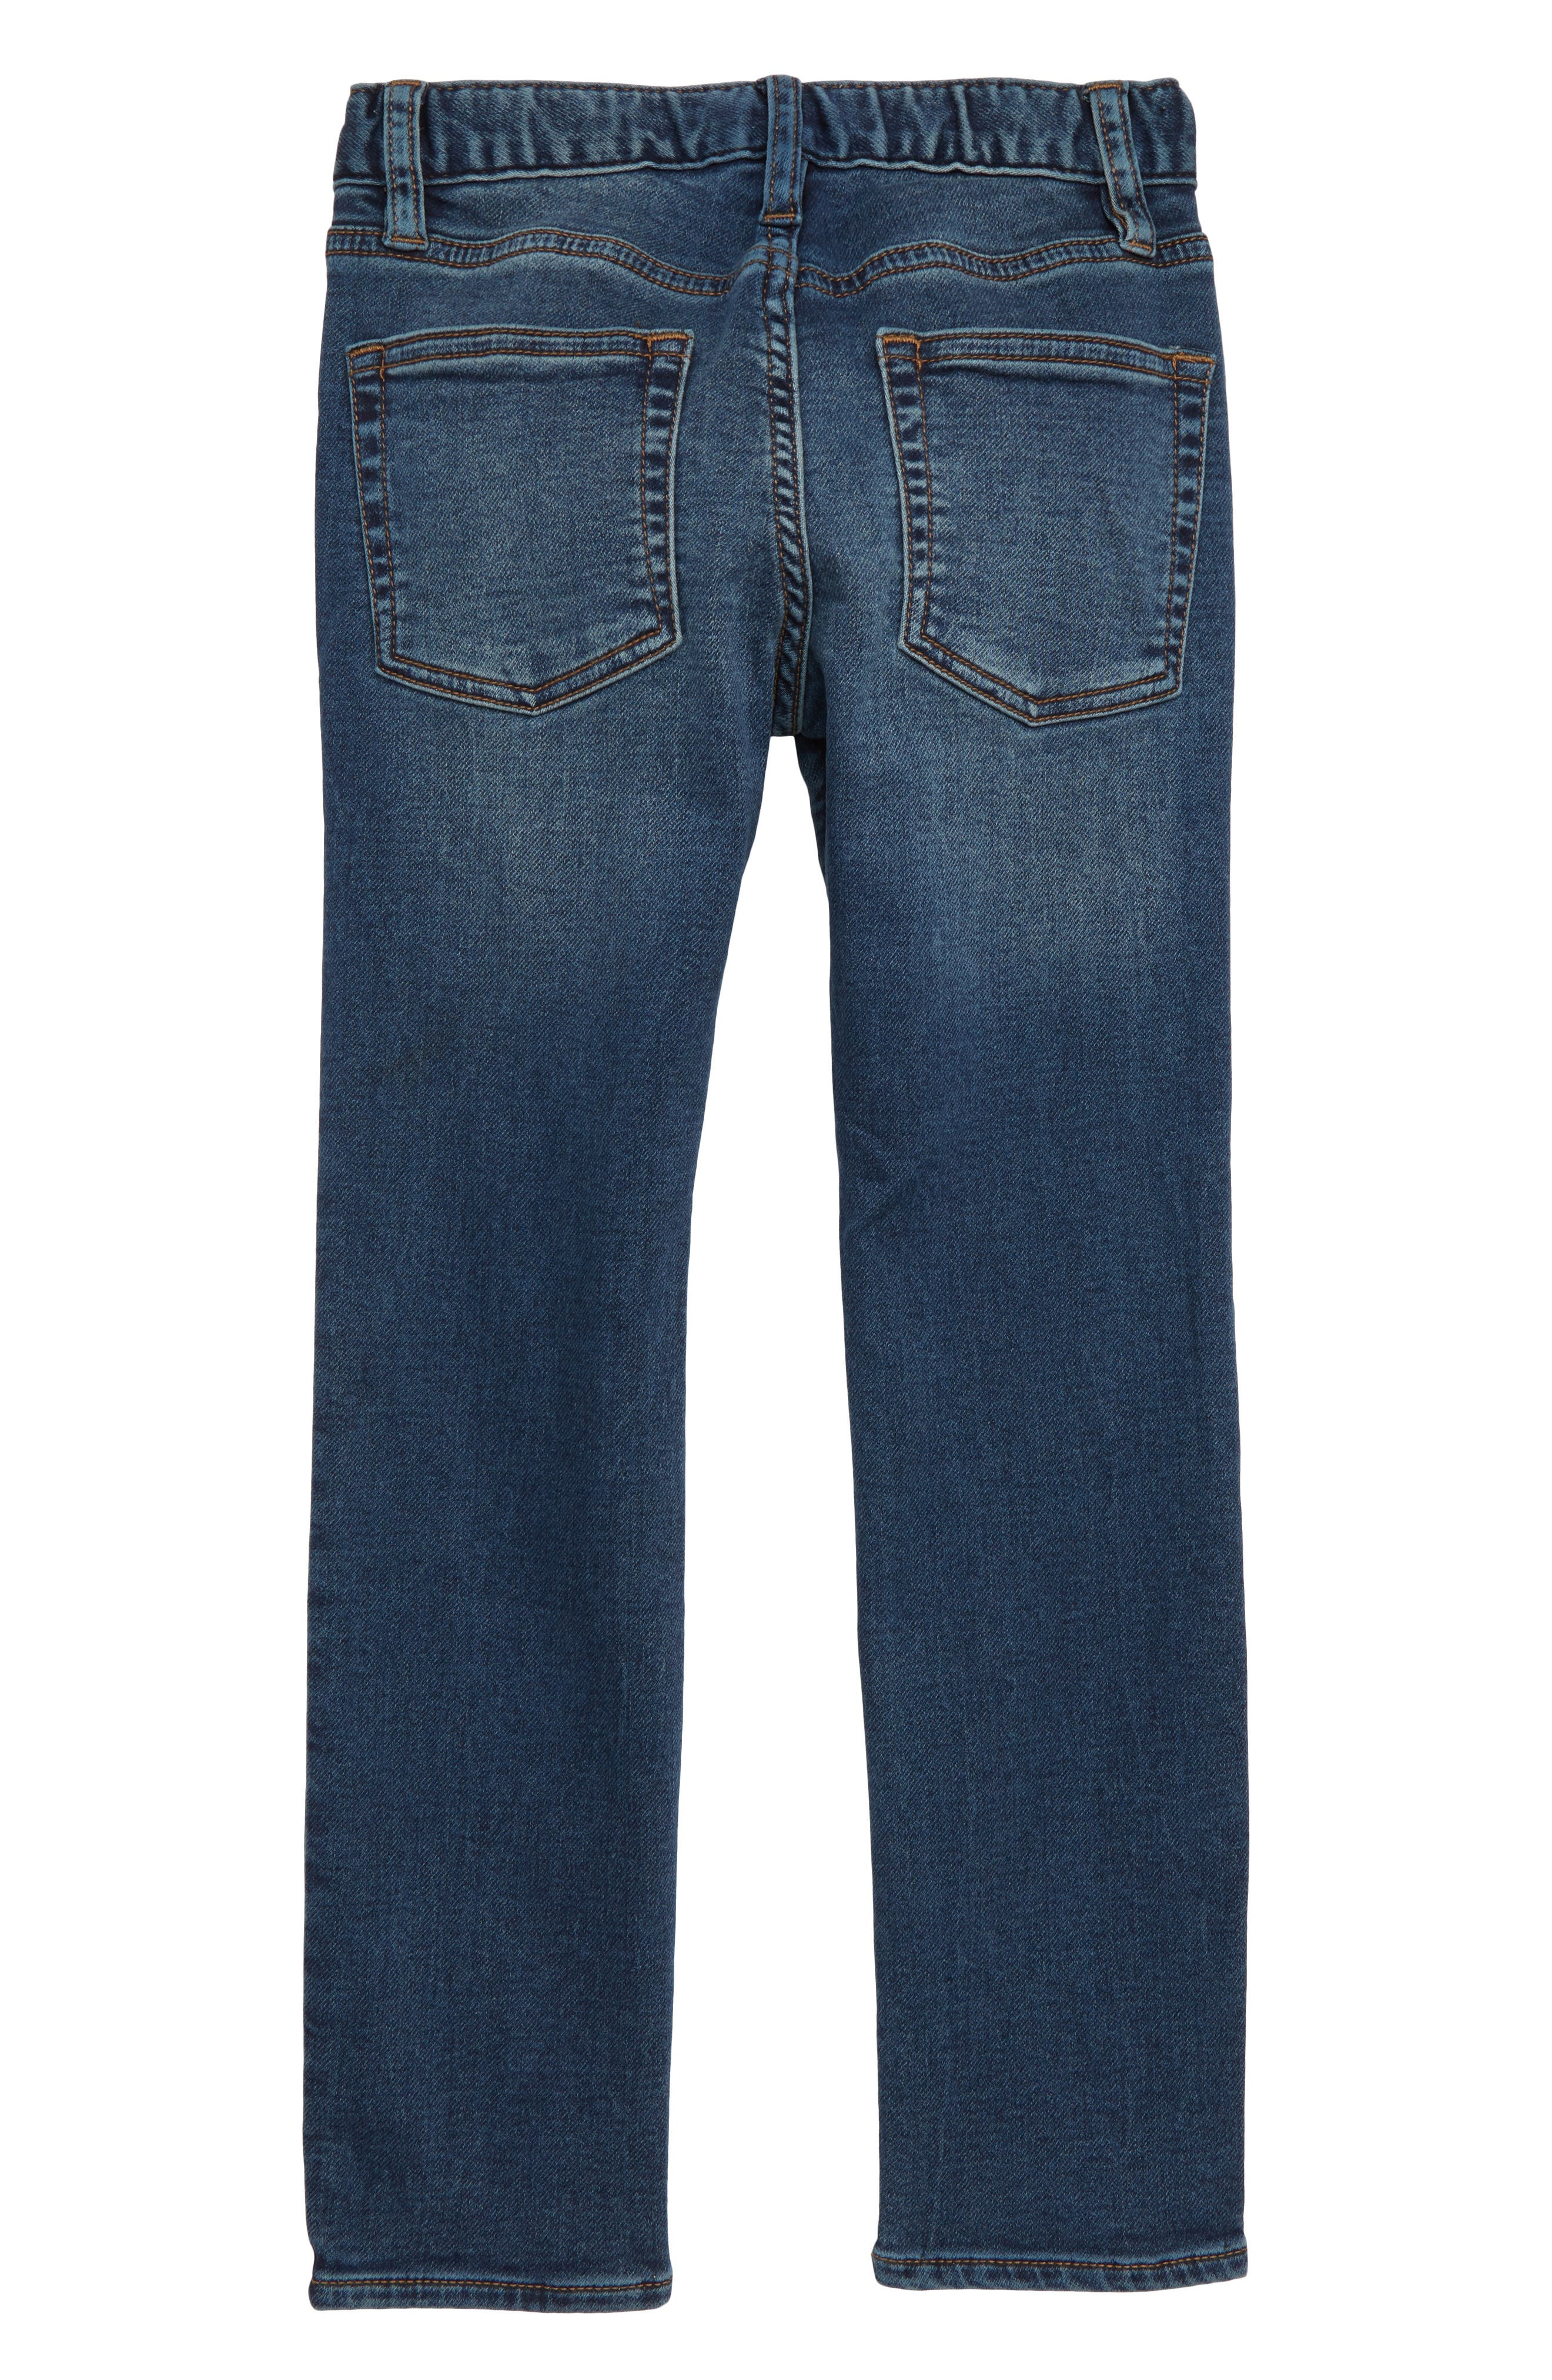 Runaround Skinny Jeans,                             Alternate thumbnail 2, color,                             400